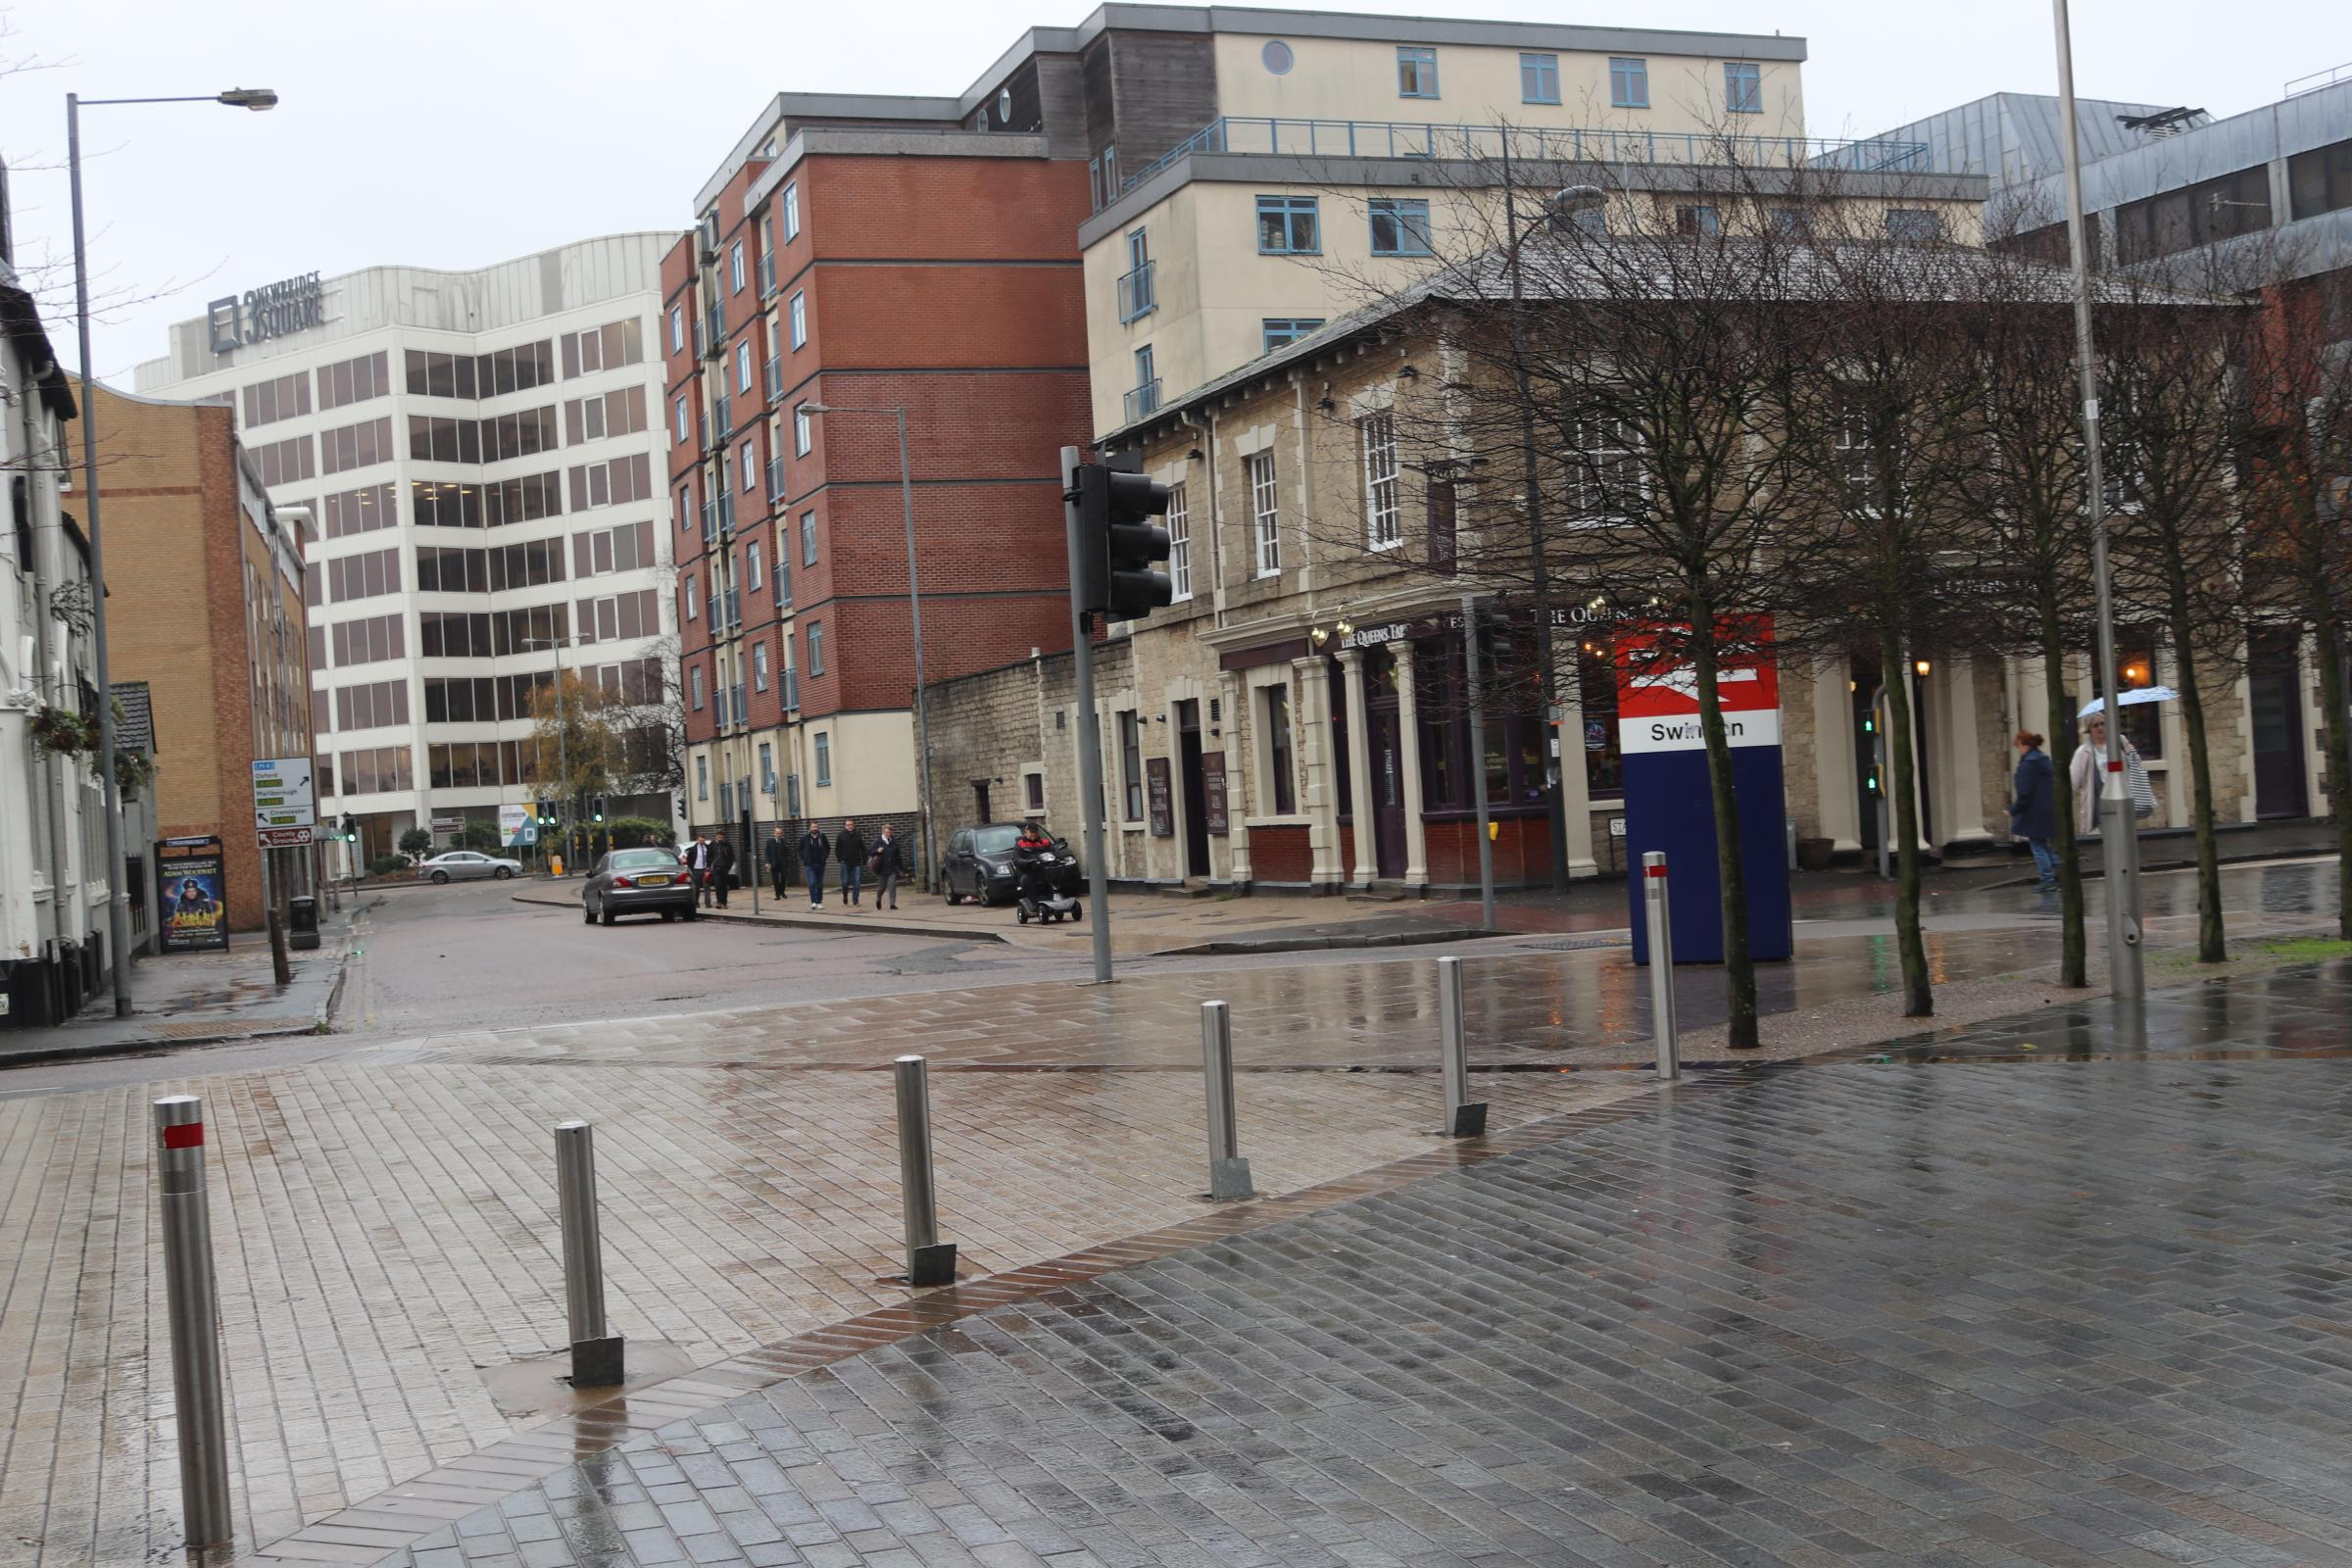 The council is looking to revamp Wellington Street